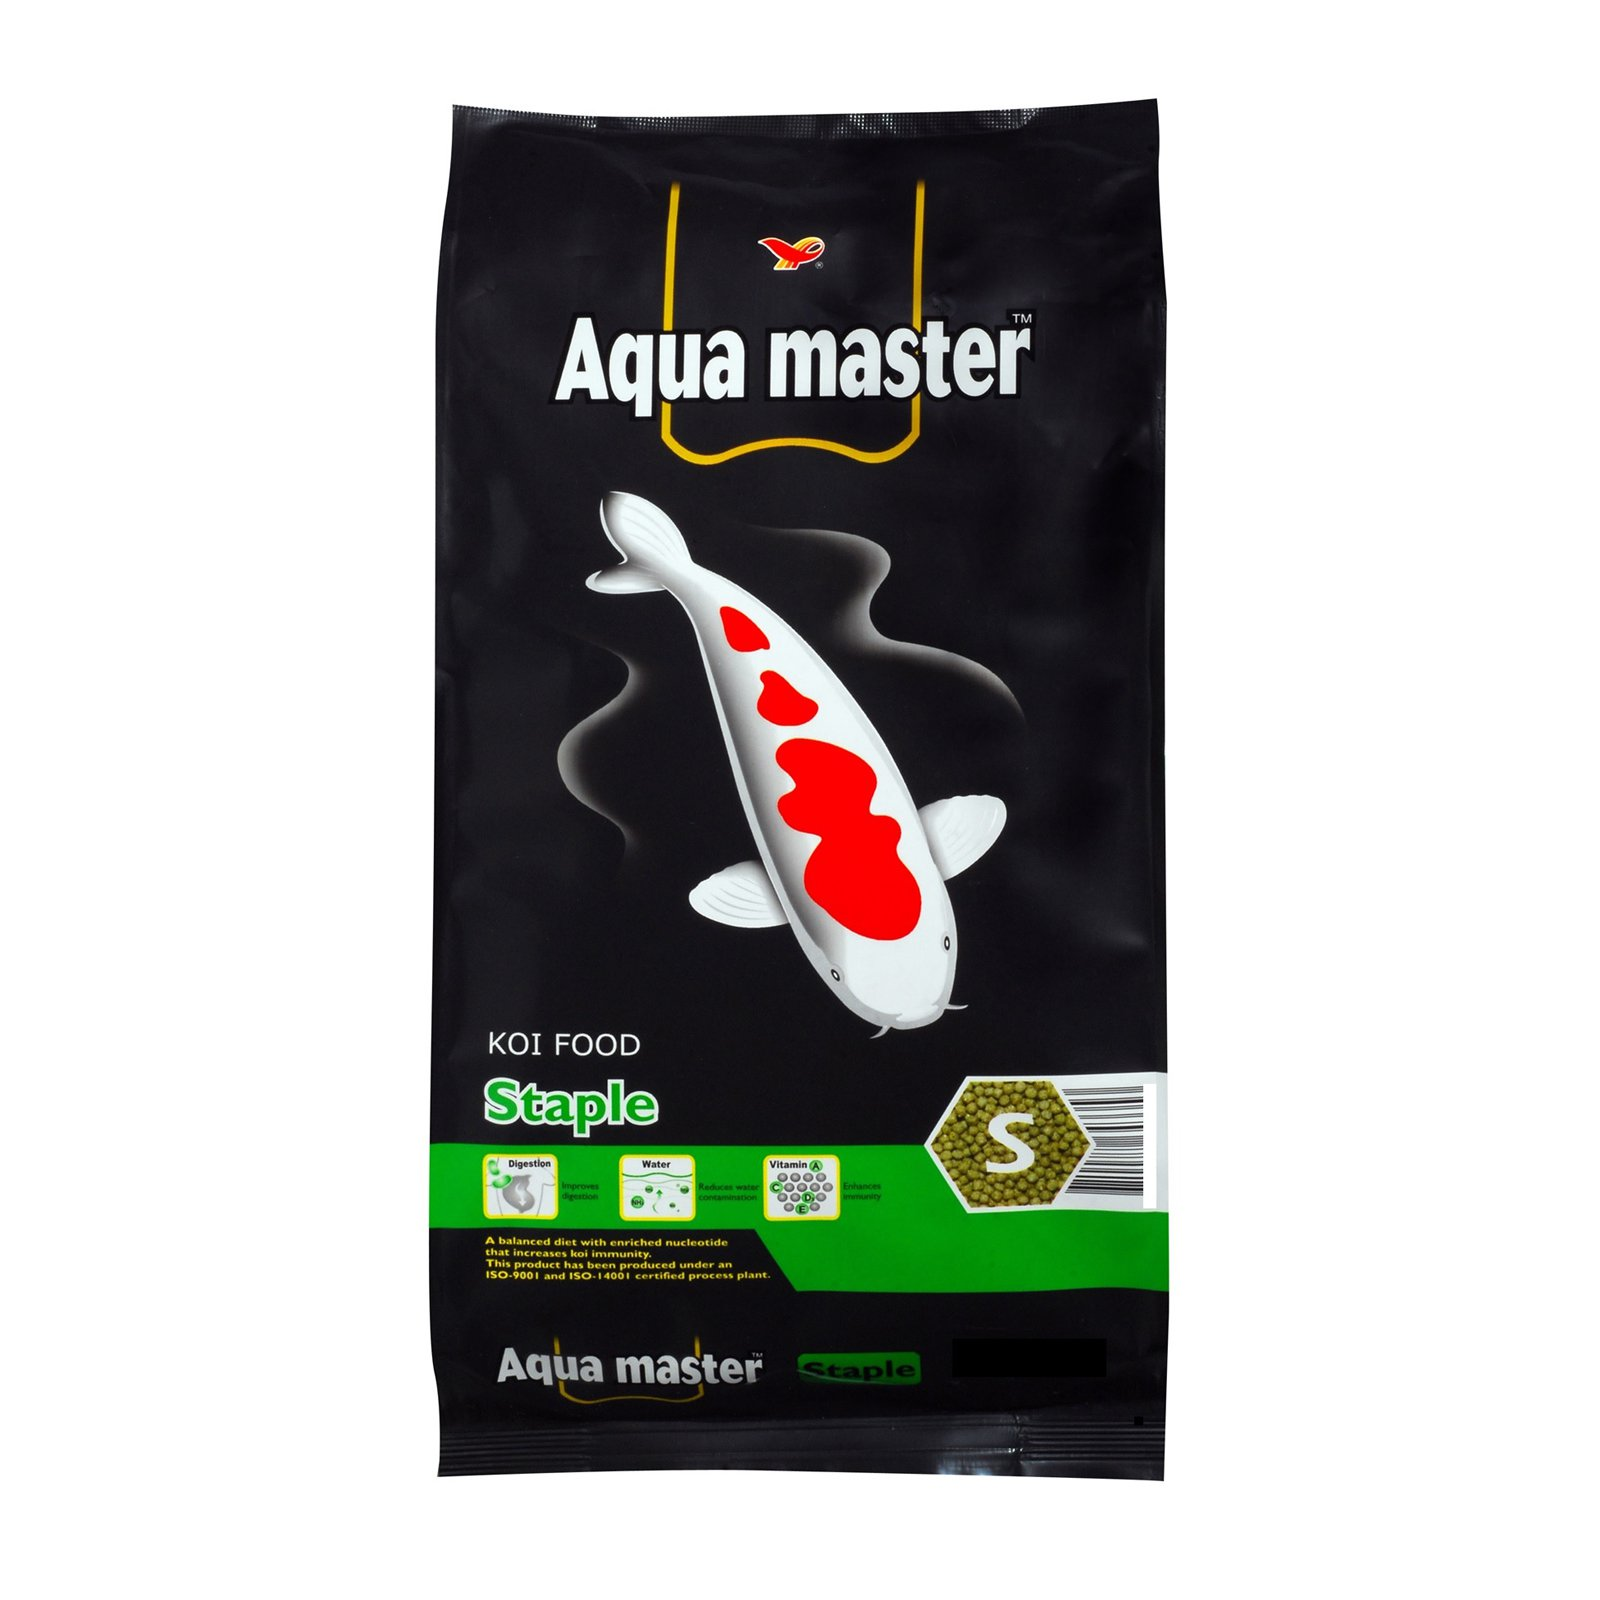 Aqua Master Staple Koi Food by Kokaho Aquarium Co